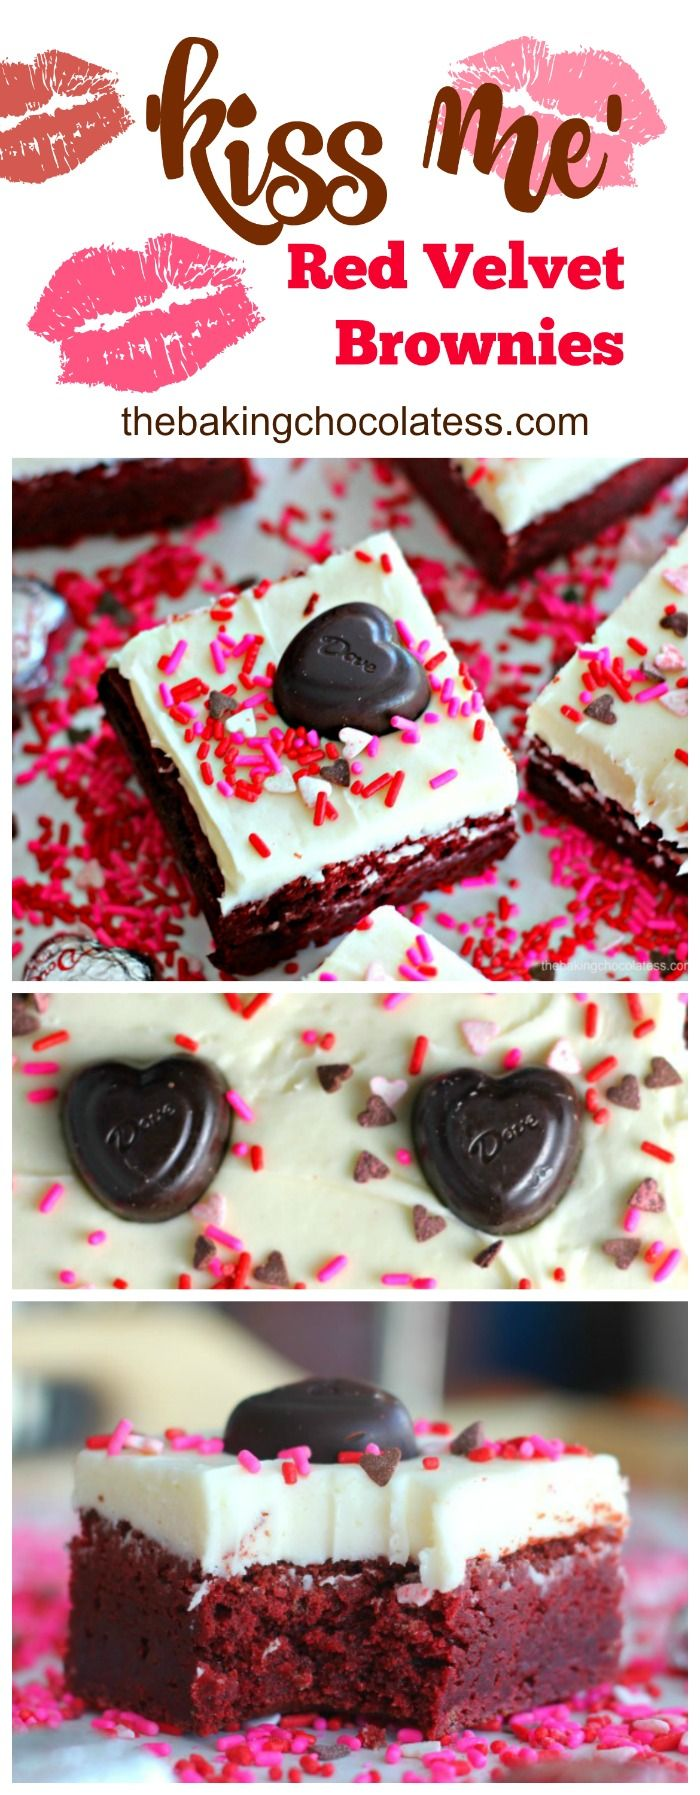 Rich, cream cheese frosted decadent red velvet brownies made with home-made love, waiting to be kissed by your lips! These are a Valentine's Day sweet treat sure to get some attention! via @https://www.pinterest.com/BaknChocolaTess/